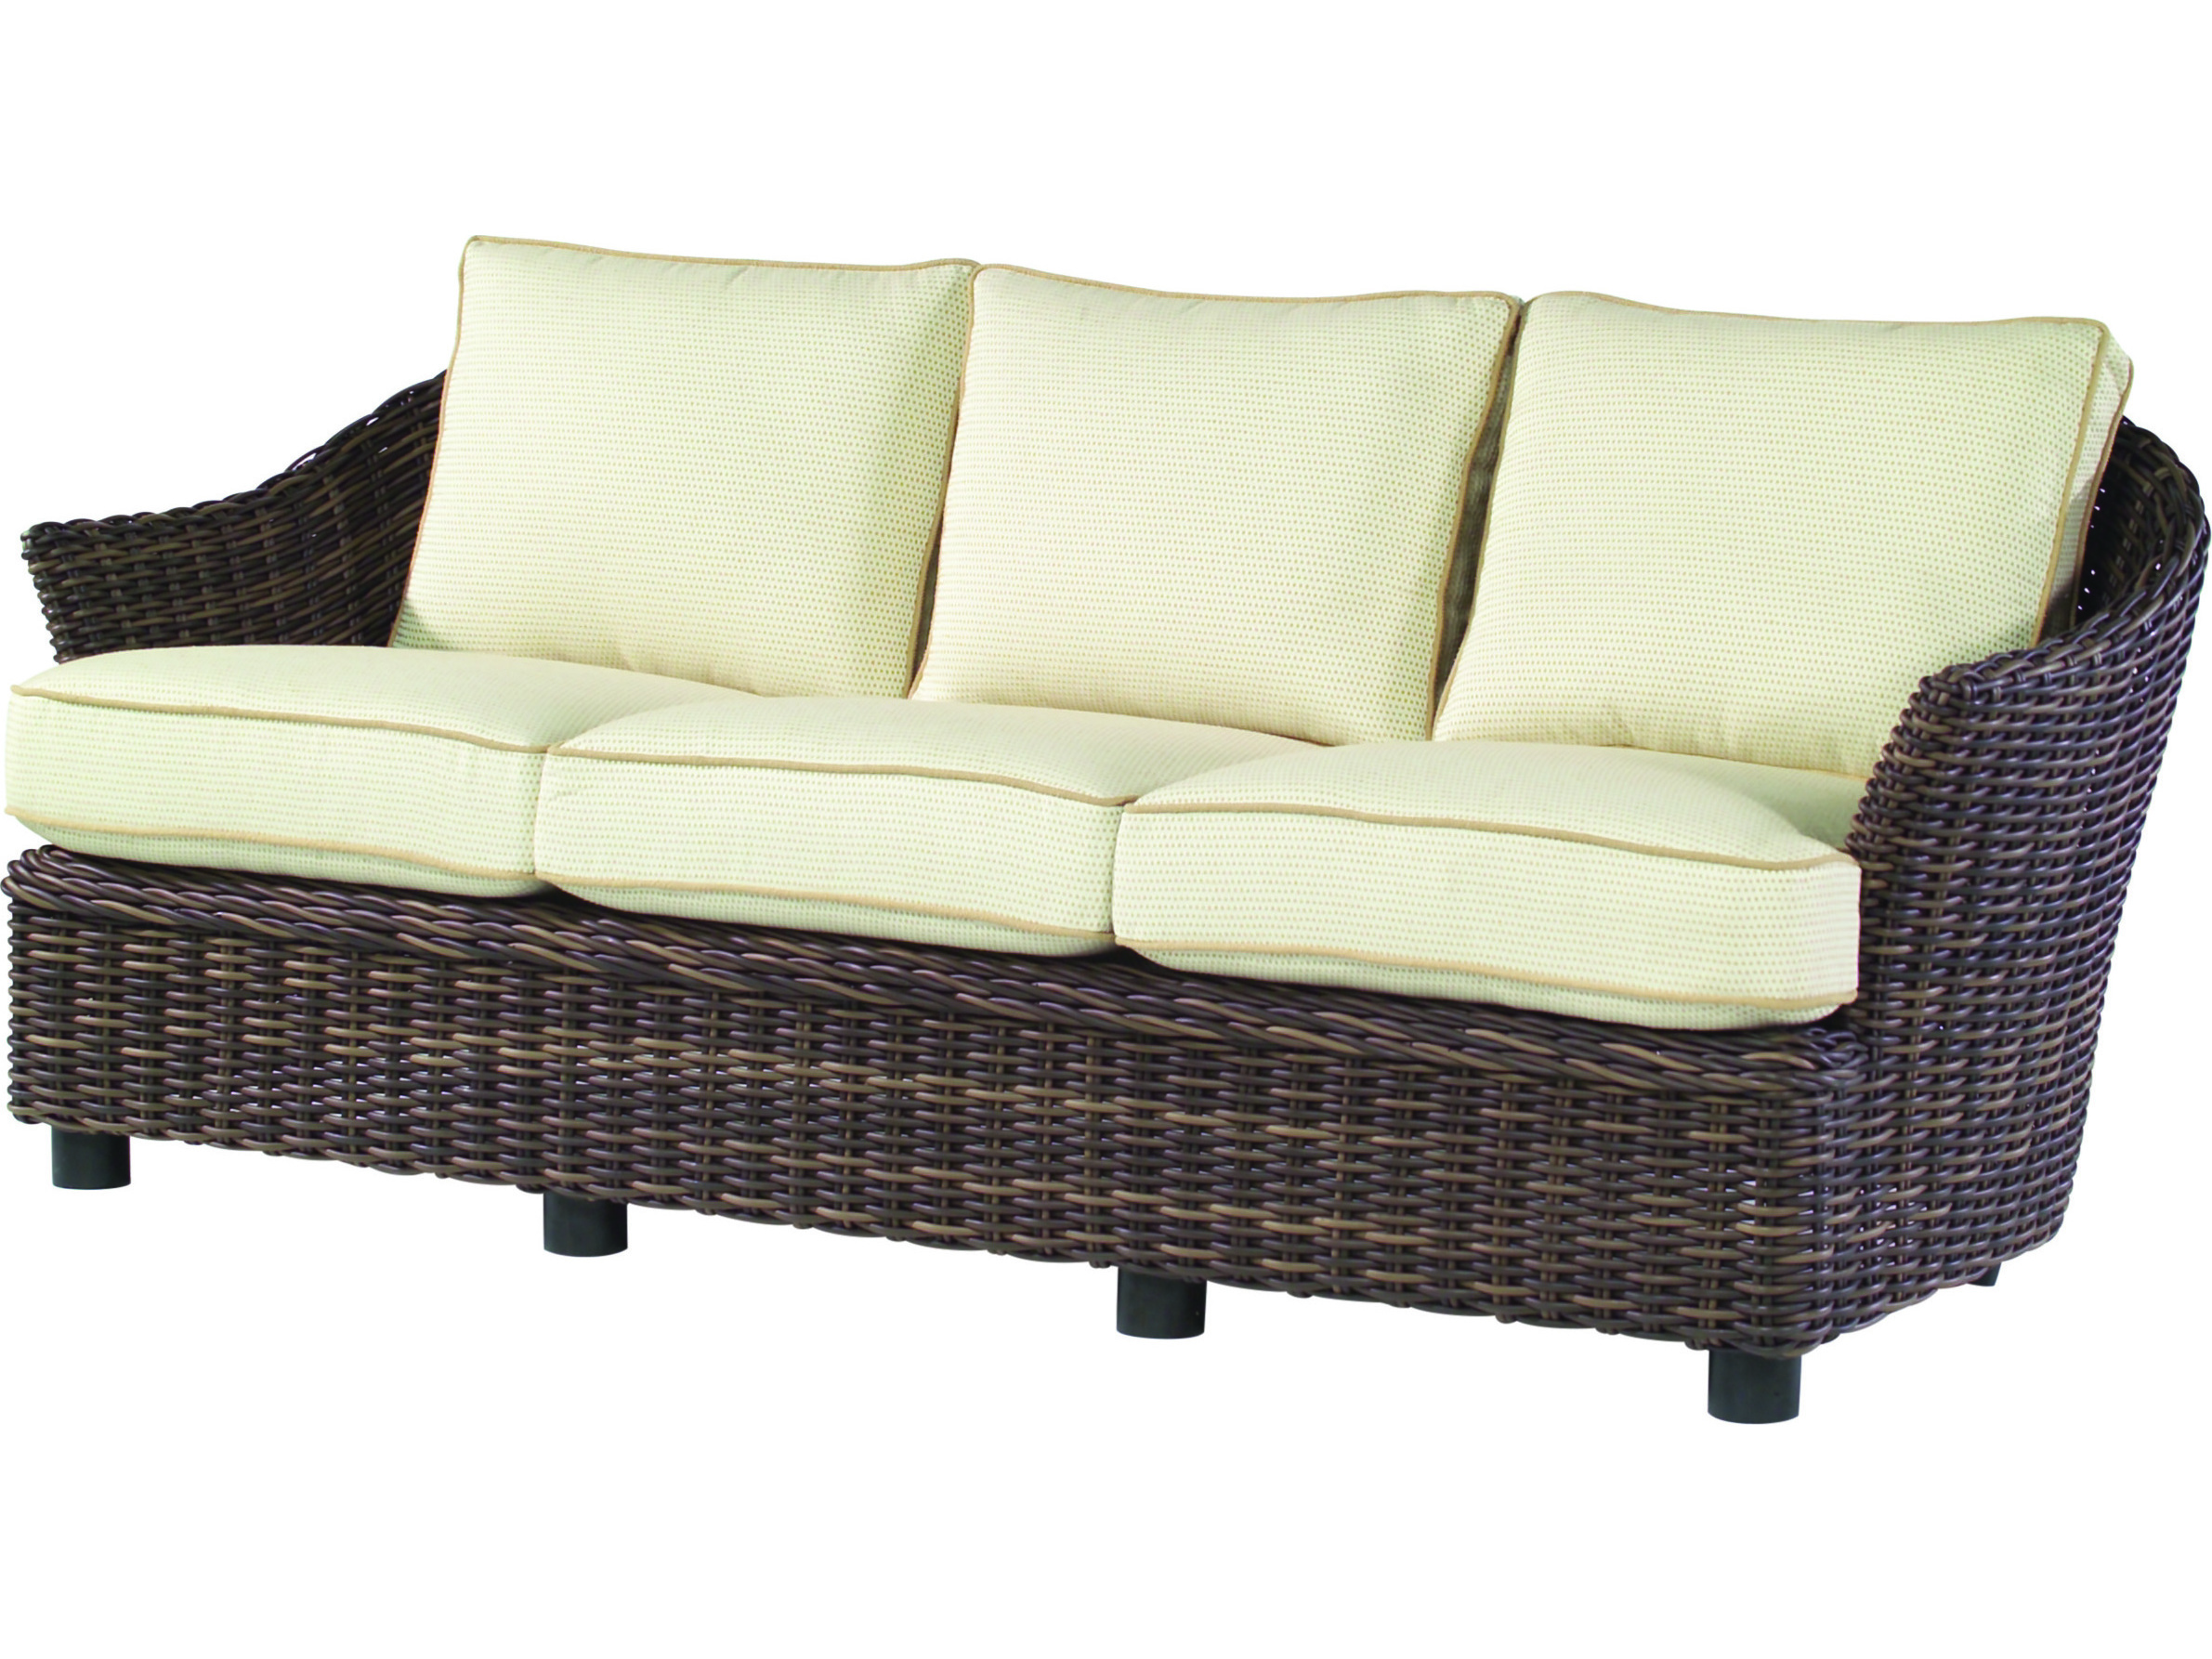 100 wicker settee replacement cushions patio furniture - Replacement cushions for wicker patio furniture ...